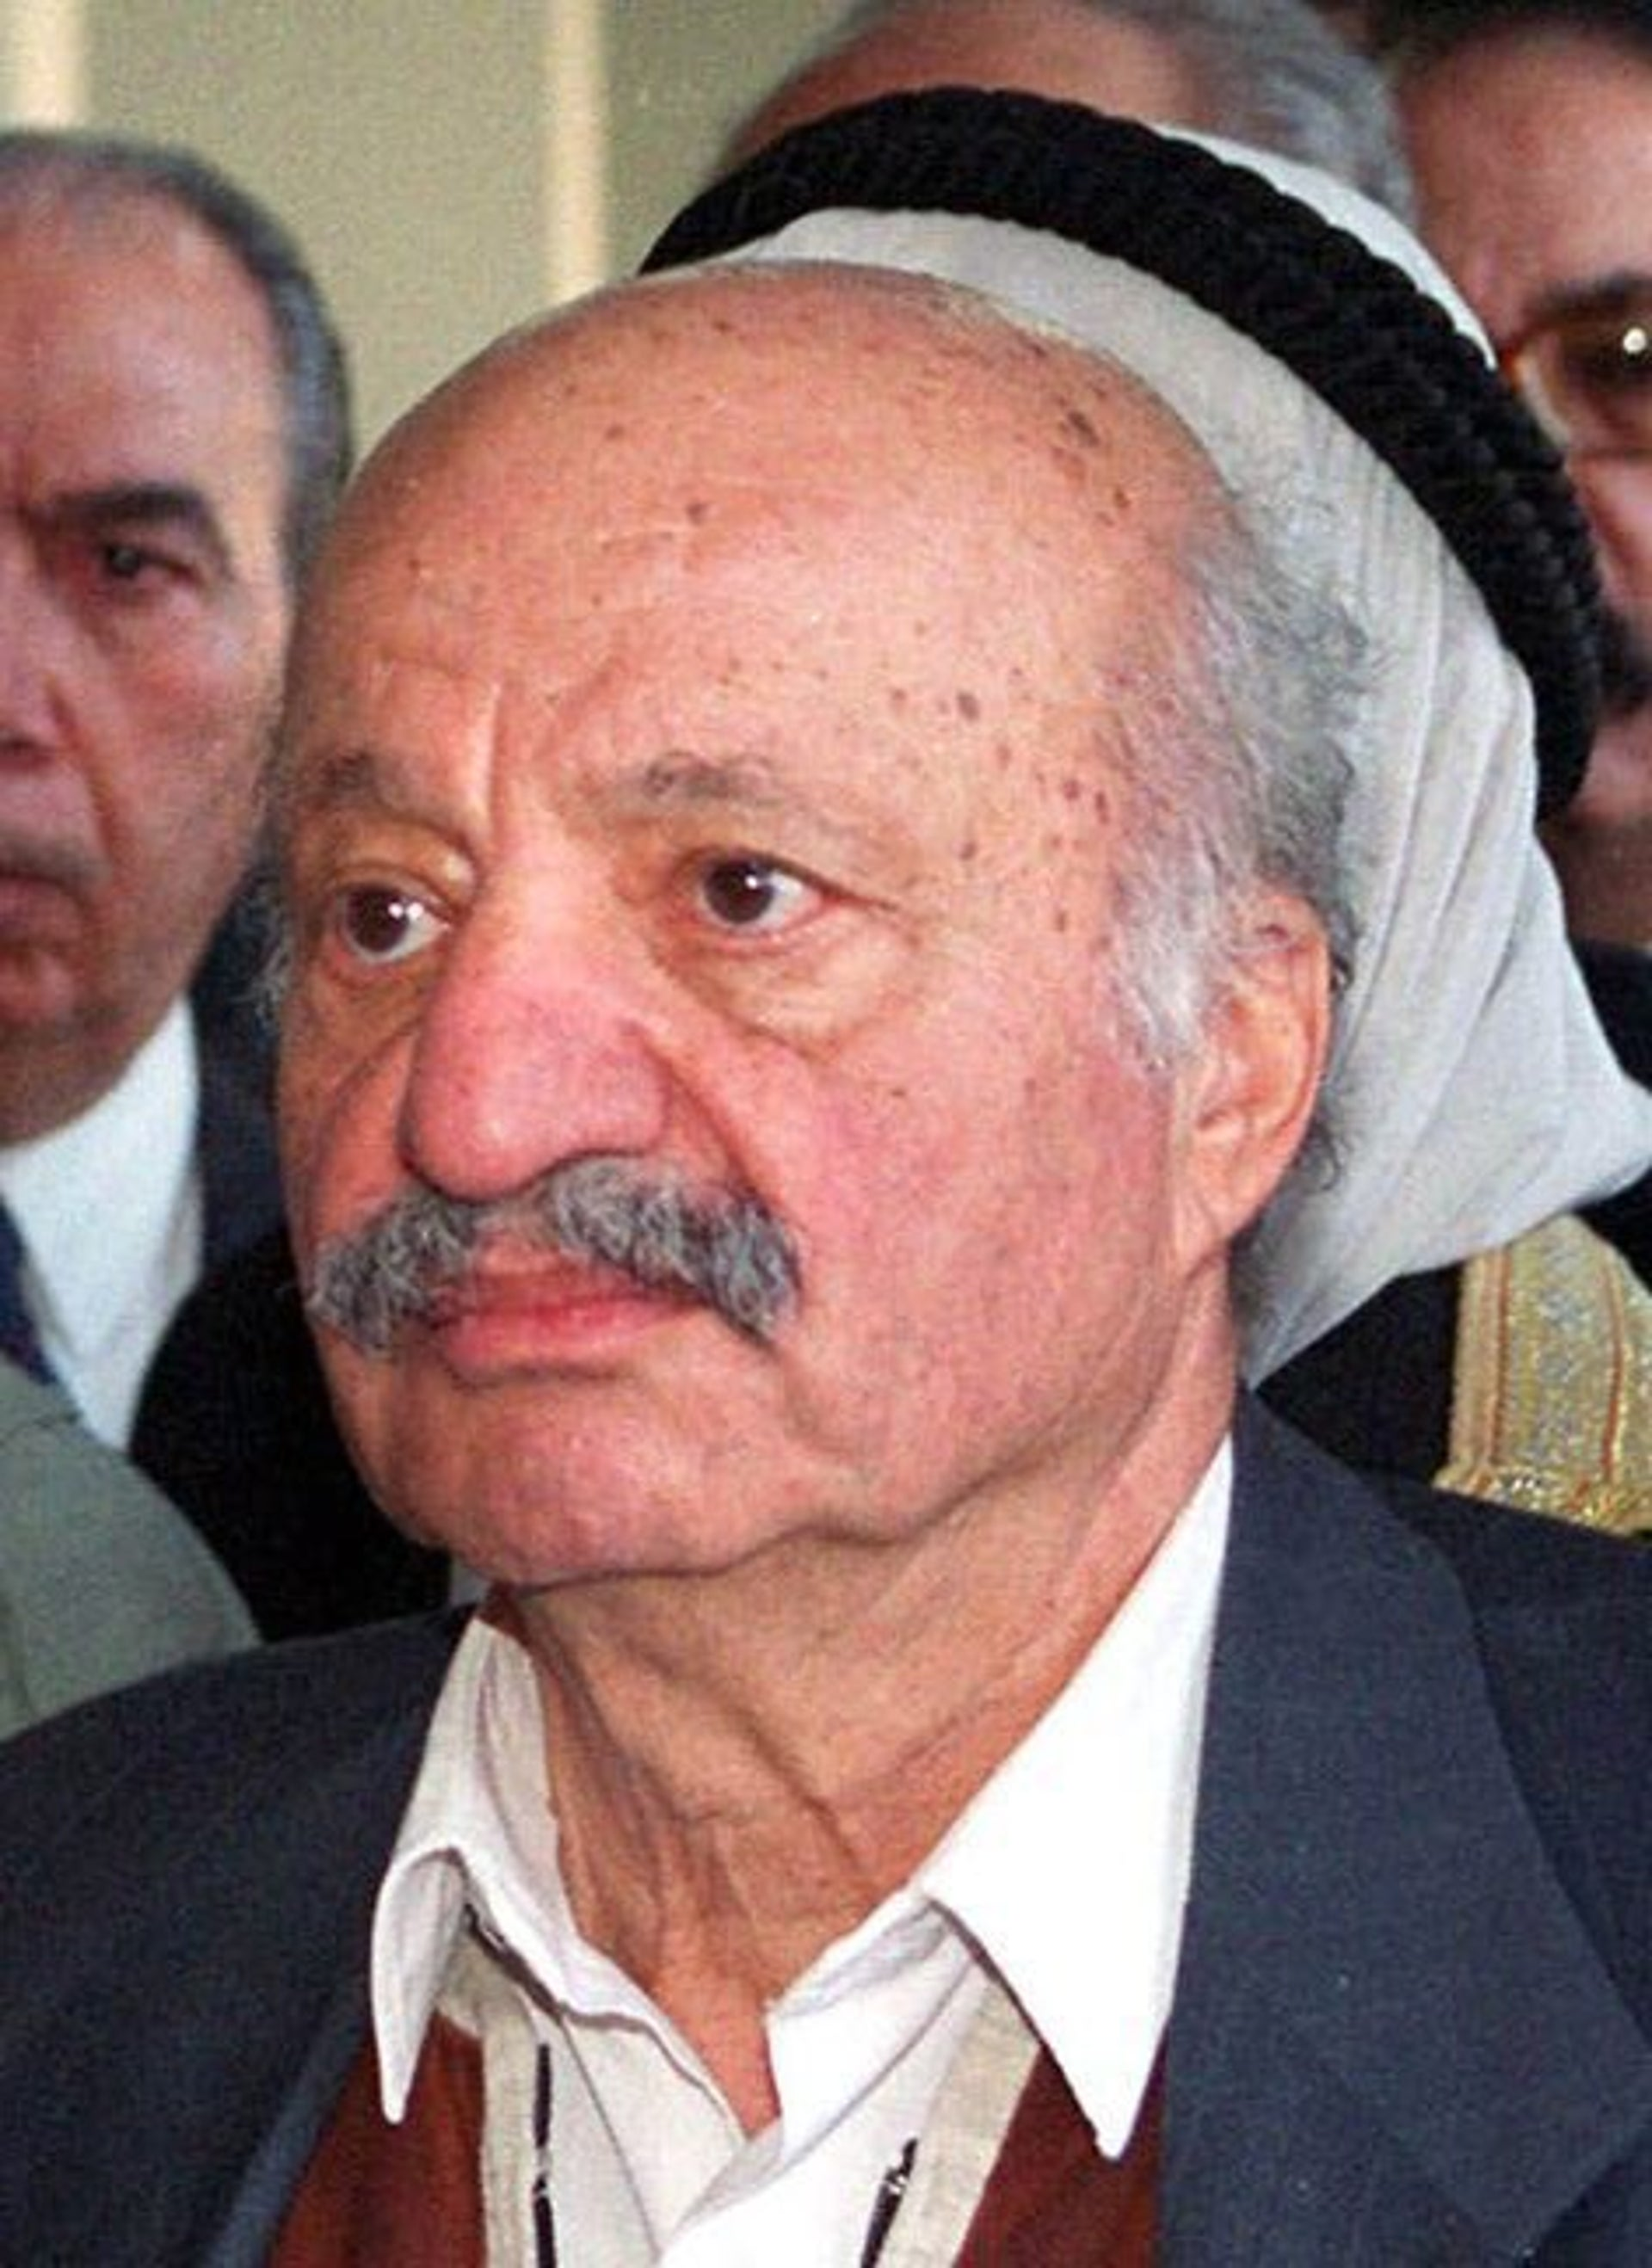 PLO leader Yasser Arafat's brother, Fathi, at the funeral of their sister Inam in 1999.